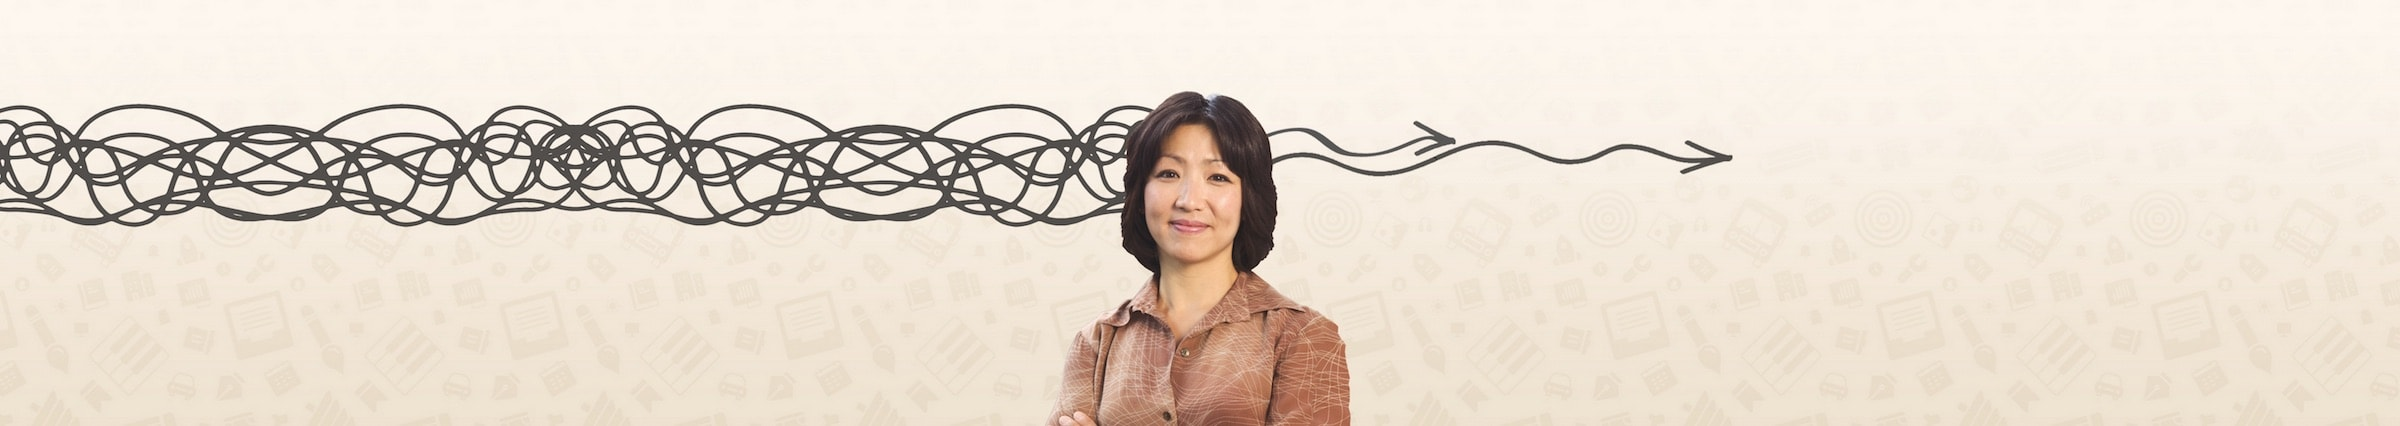 woman standing in front of graphic background with the appearance of a squiggly line entering the left of his head and two gently wavy arrows emerging from the right hand side